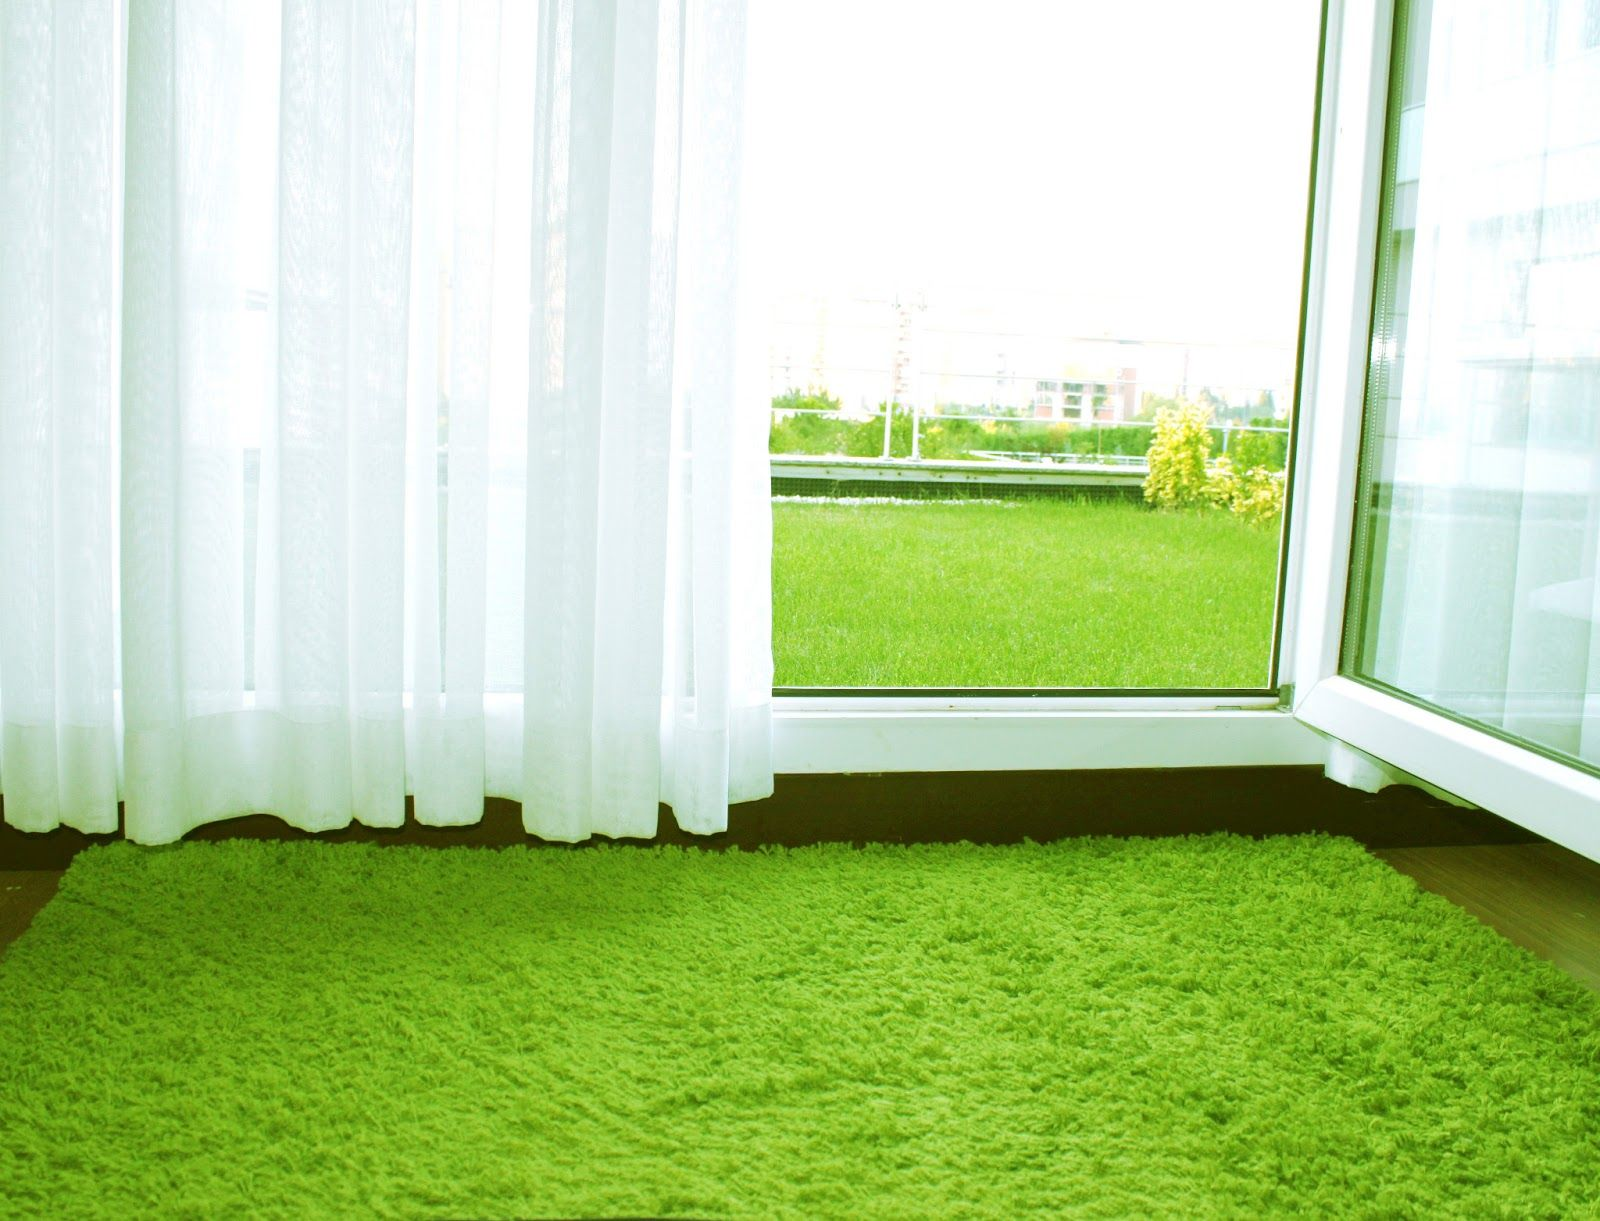 Green Carpets And Rugs 4 Eco Friendly Flooring Tips More Consumers Have Decided To Go When Decorating Their Homes For Both Environmental